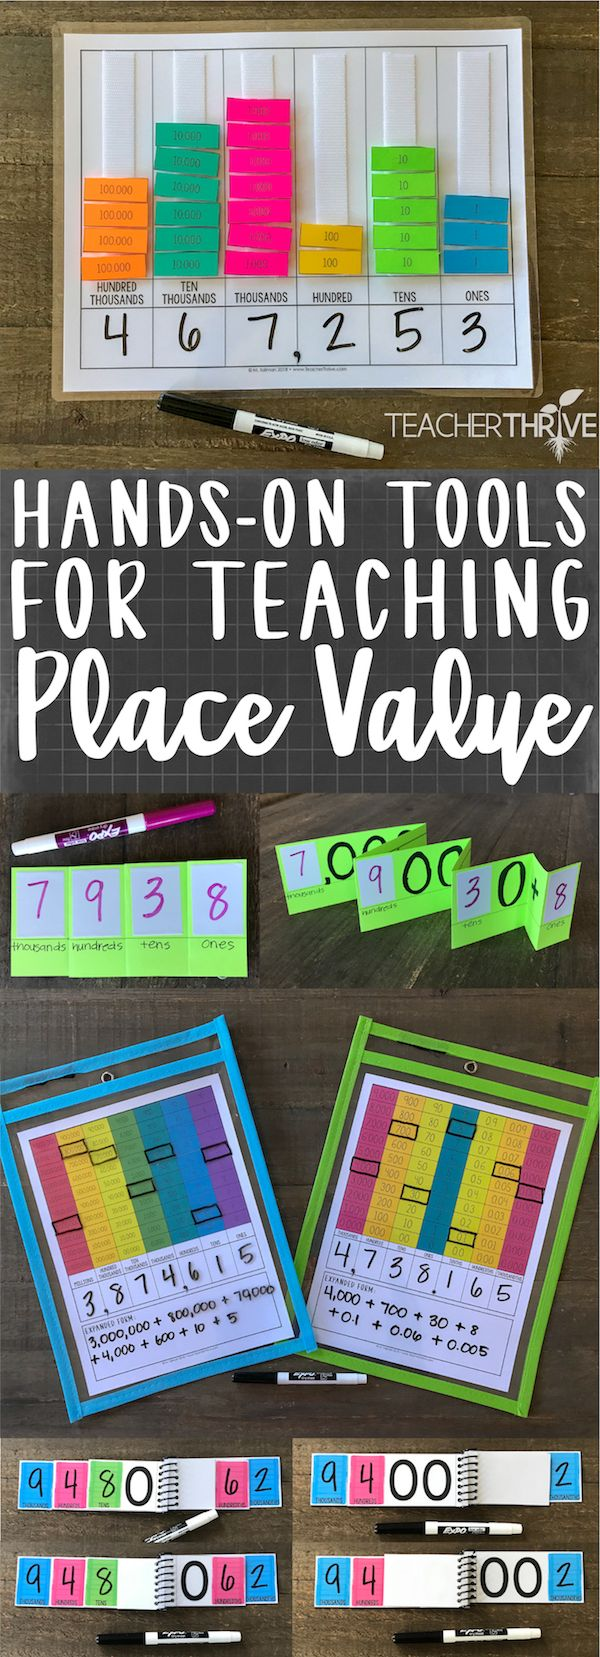 Hands-on activities for teaching place value via @gottoteach #mathlessons